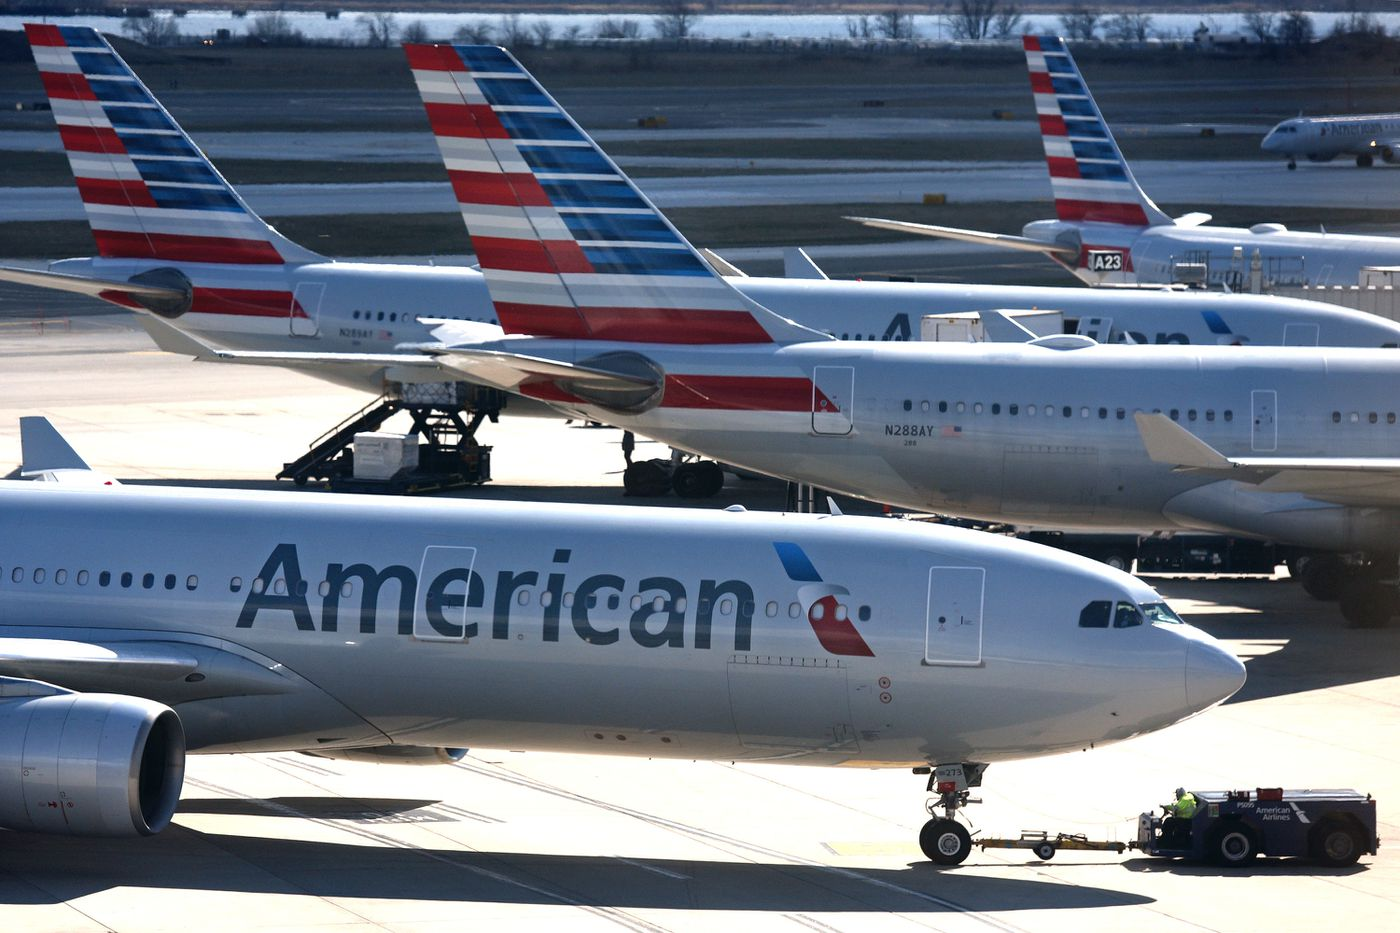 American Airlines is adding direct flights from Philly to Europe in 2019